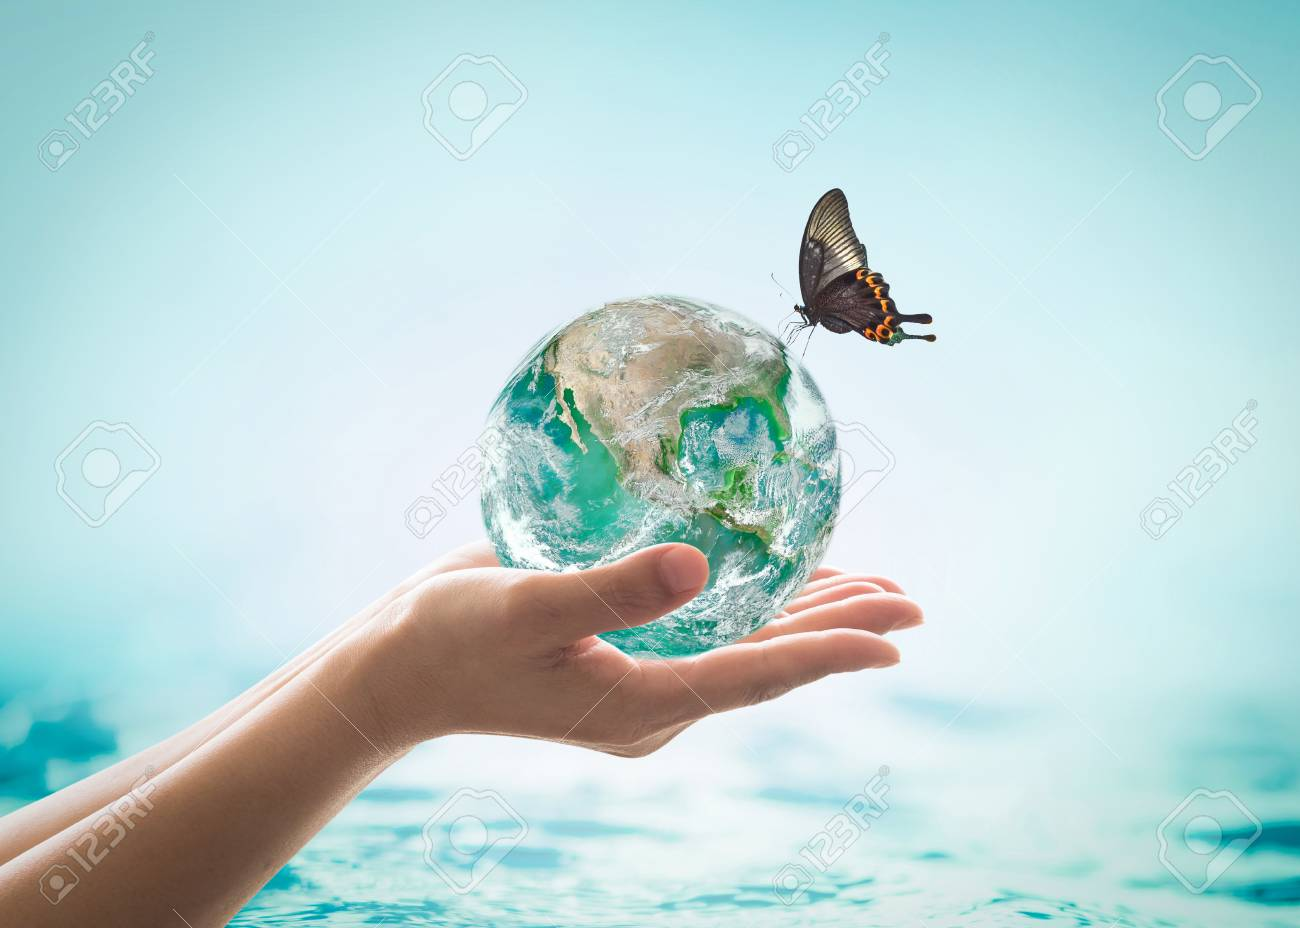 World ocean day,, saving water campaign, sustainable ecological ecosystems concept with green earth on woman's hands on blue sea background - 116067210